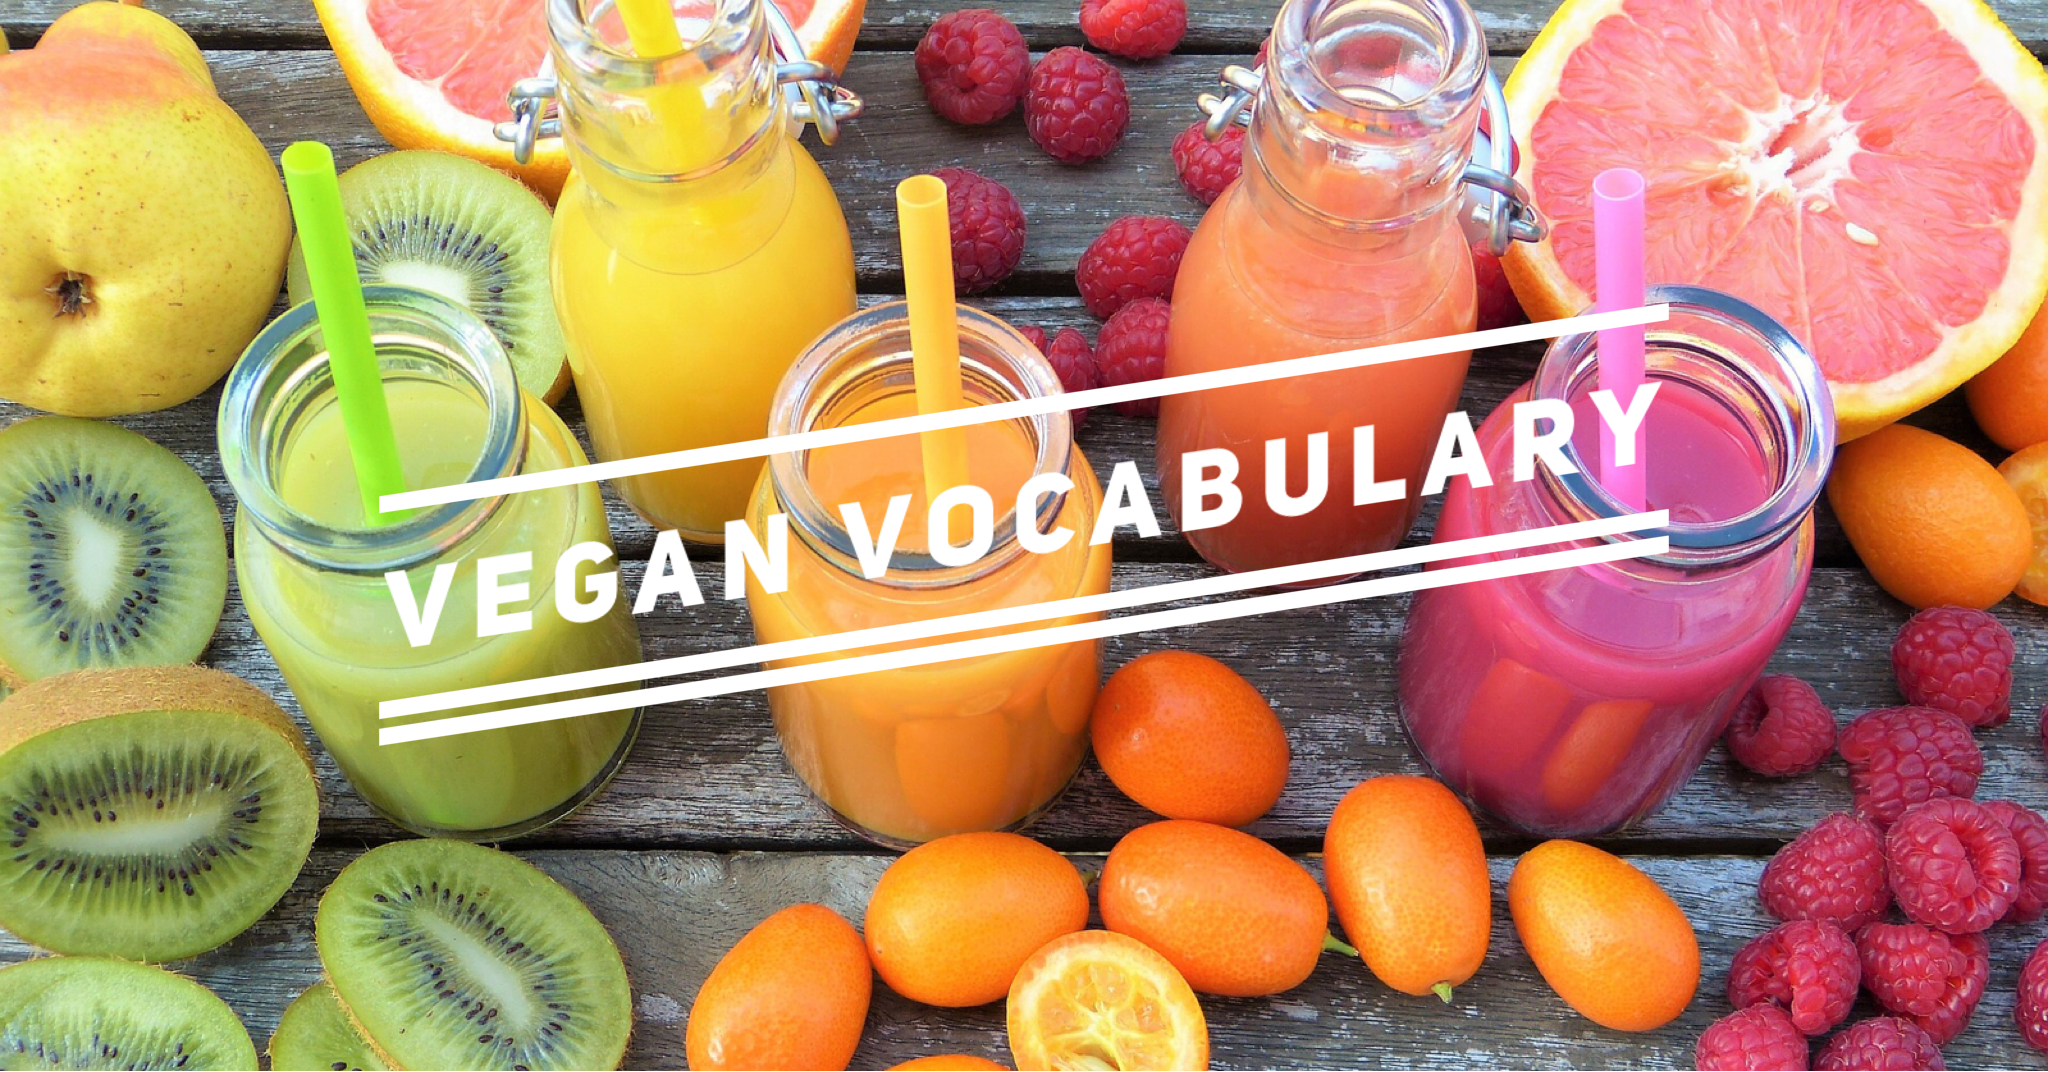 Vegan Vocabulary